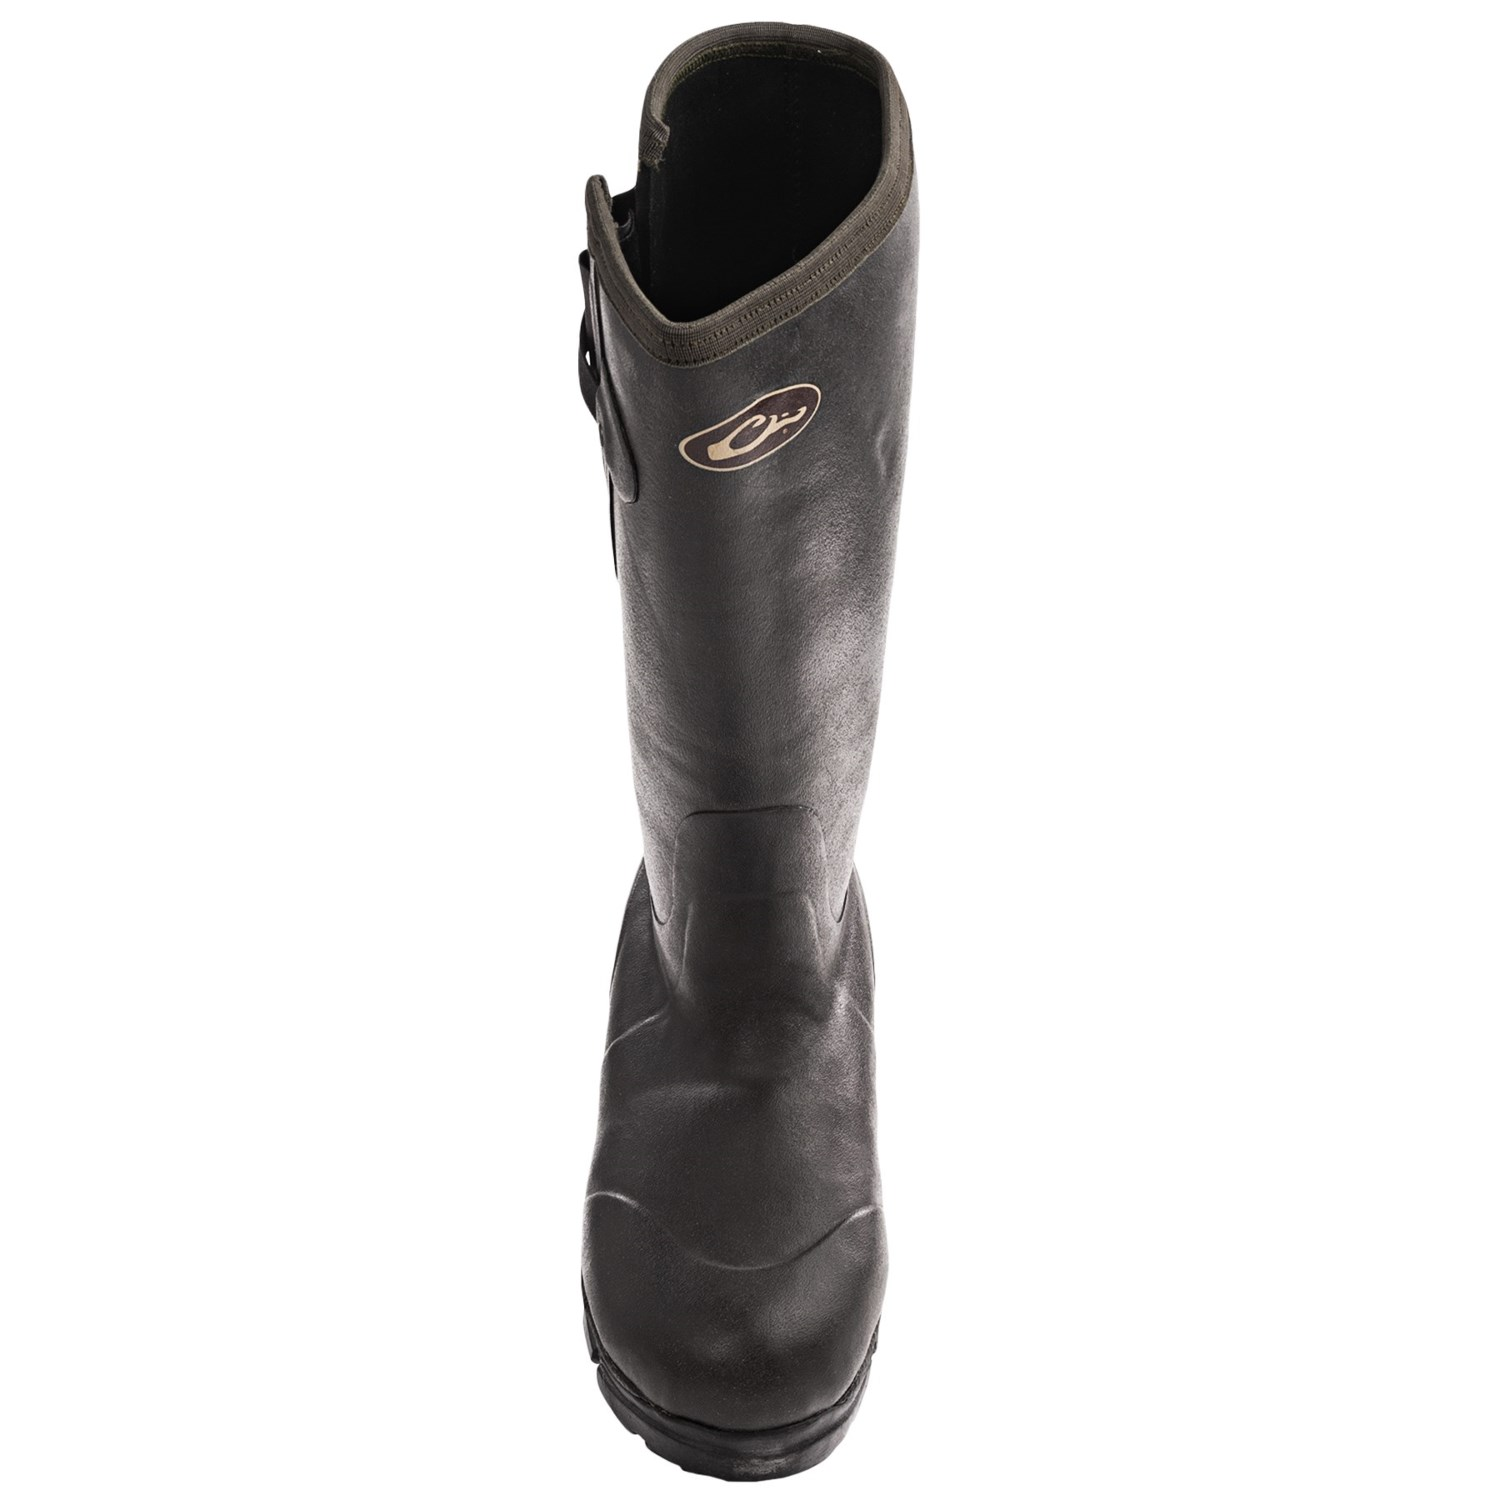 lst knee high mudder rubber boots for 6919g